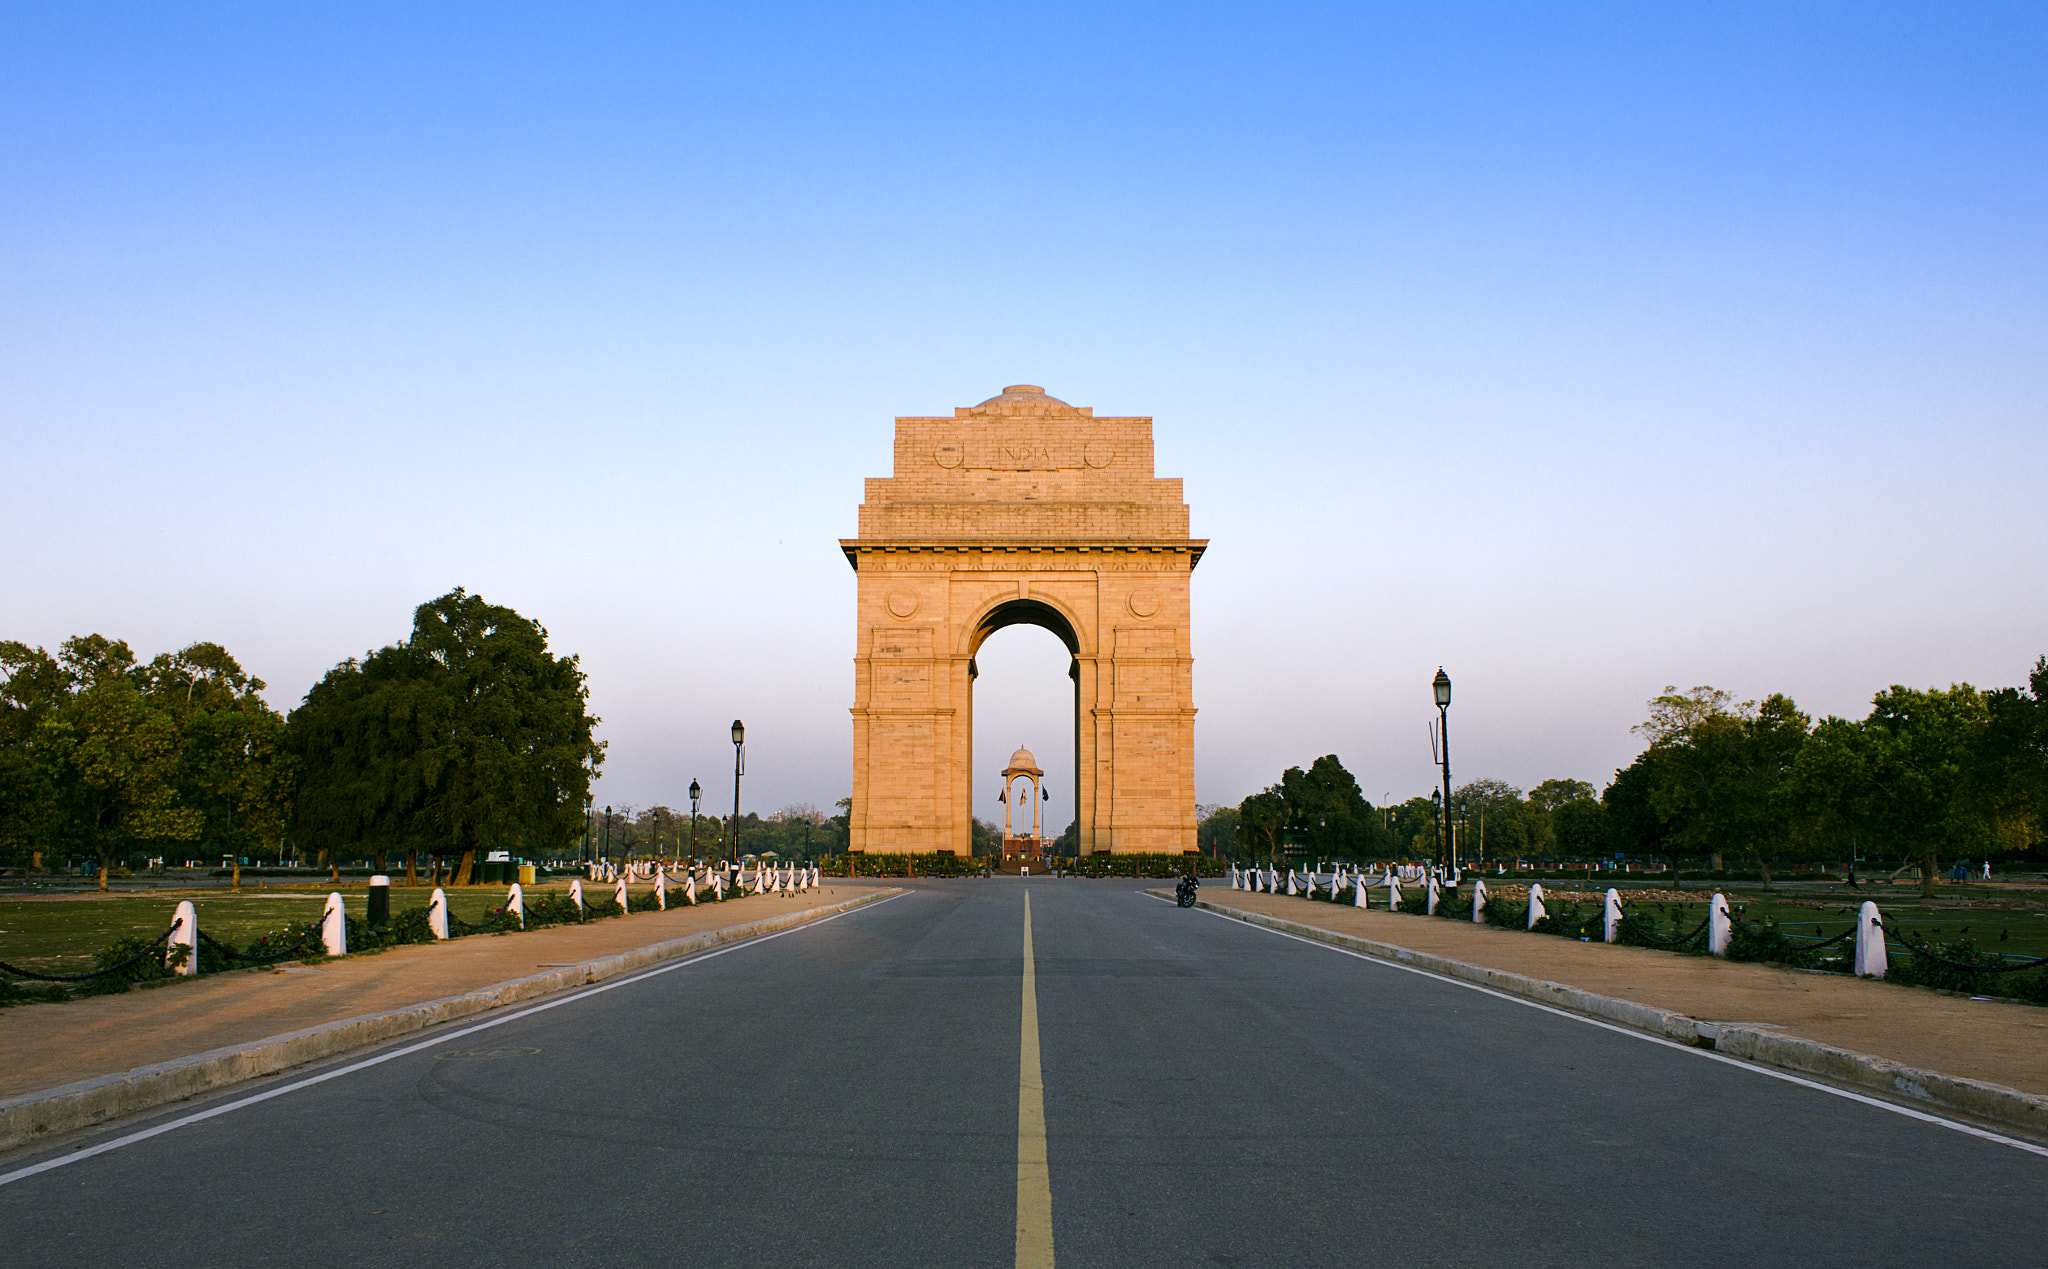 Photograph India Gate at The Blue Hour by Kunal Khurana on 500px